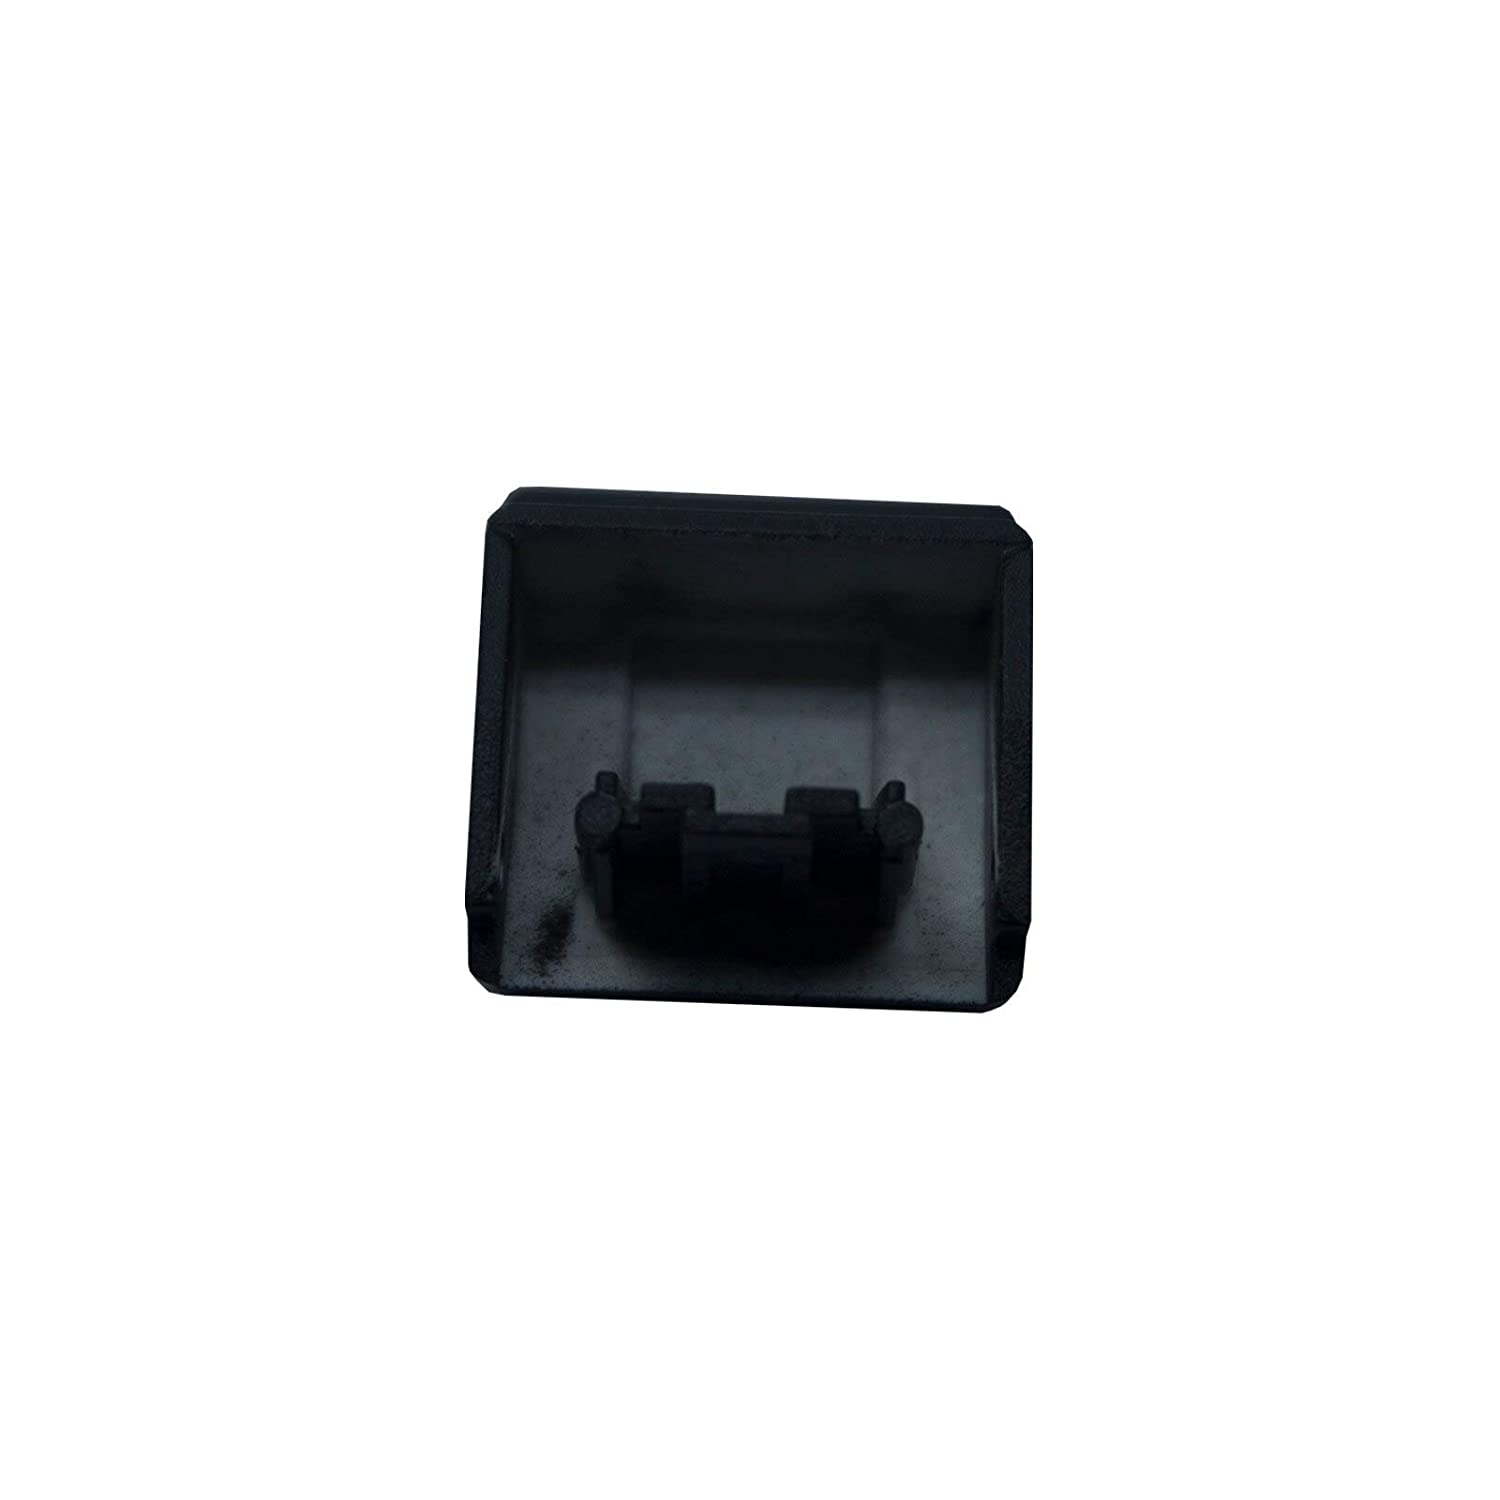 BDP984 Rear Quarter Electric Power Window Switch Repair Buttons Cover Window Control 61316902183 for BMW E46 Convertible